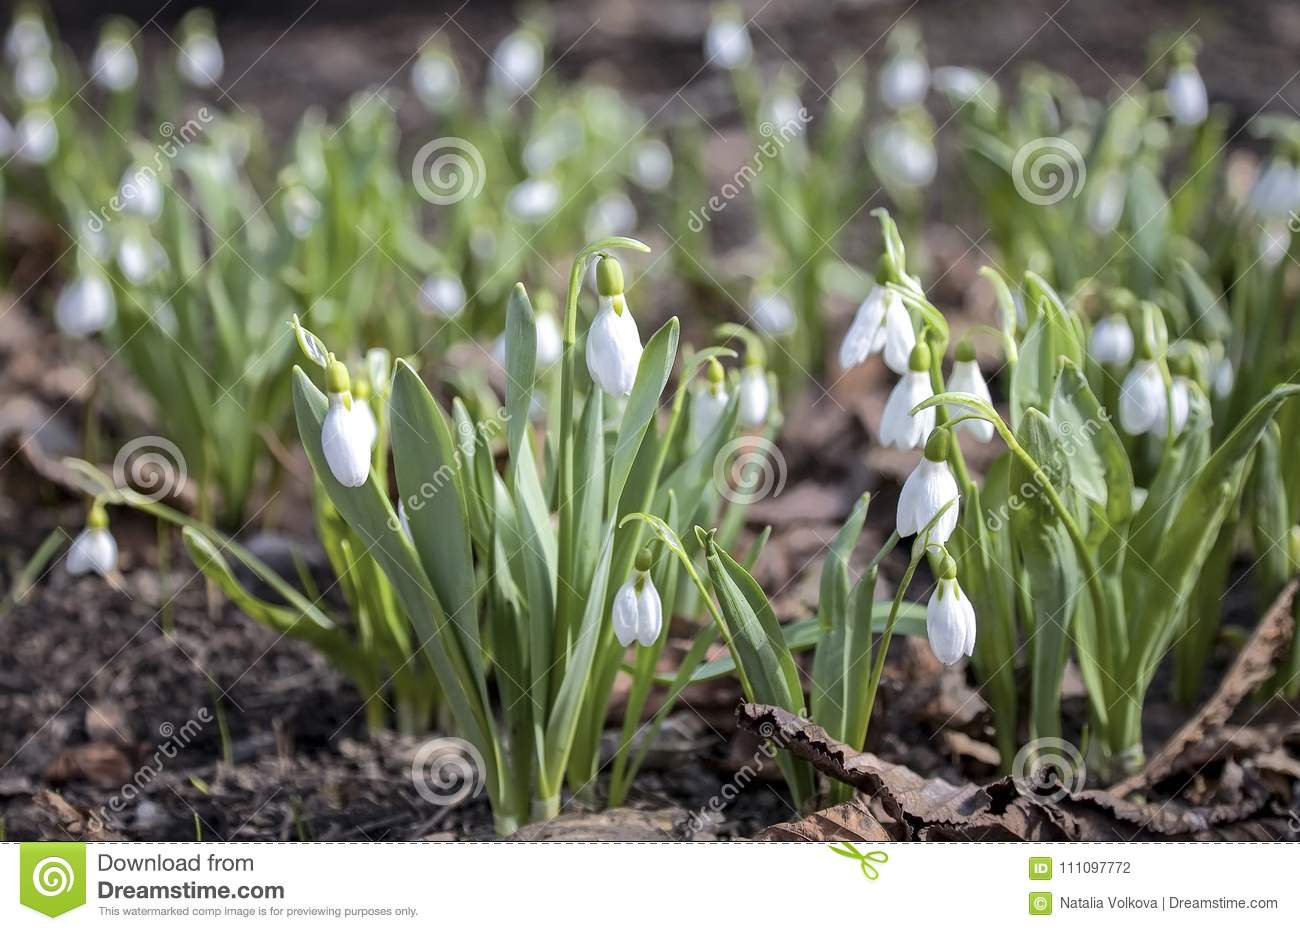 The first spring flowers snow white snowdrop stock photo image of download the first spring flowers snow white snowdrop stock photo image of first mightylinksfo